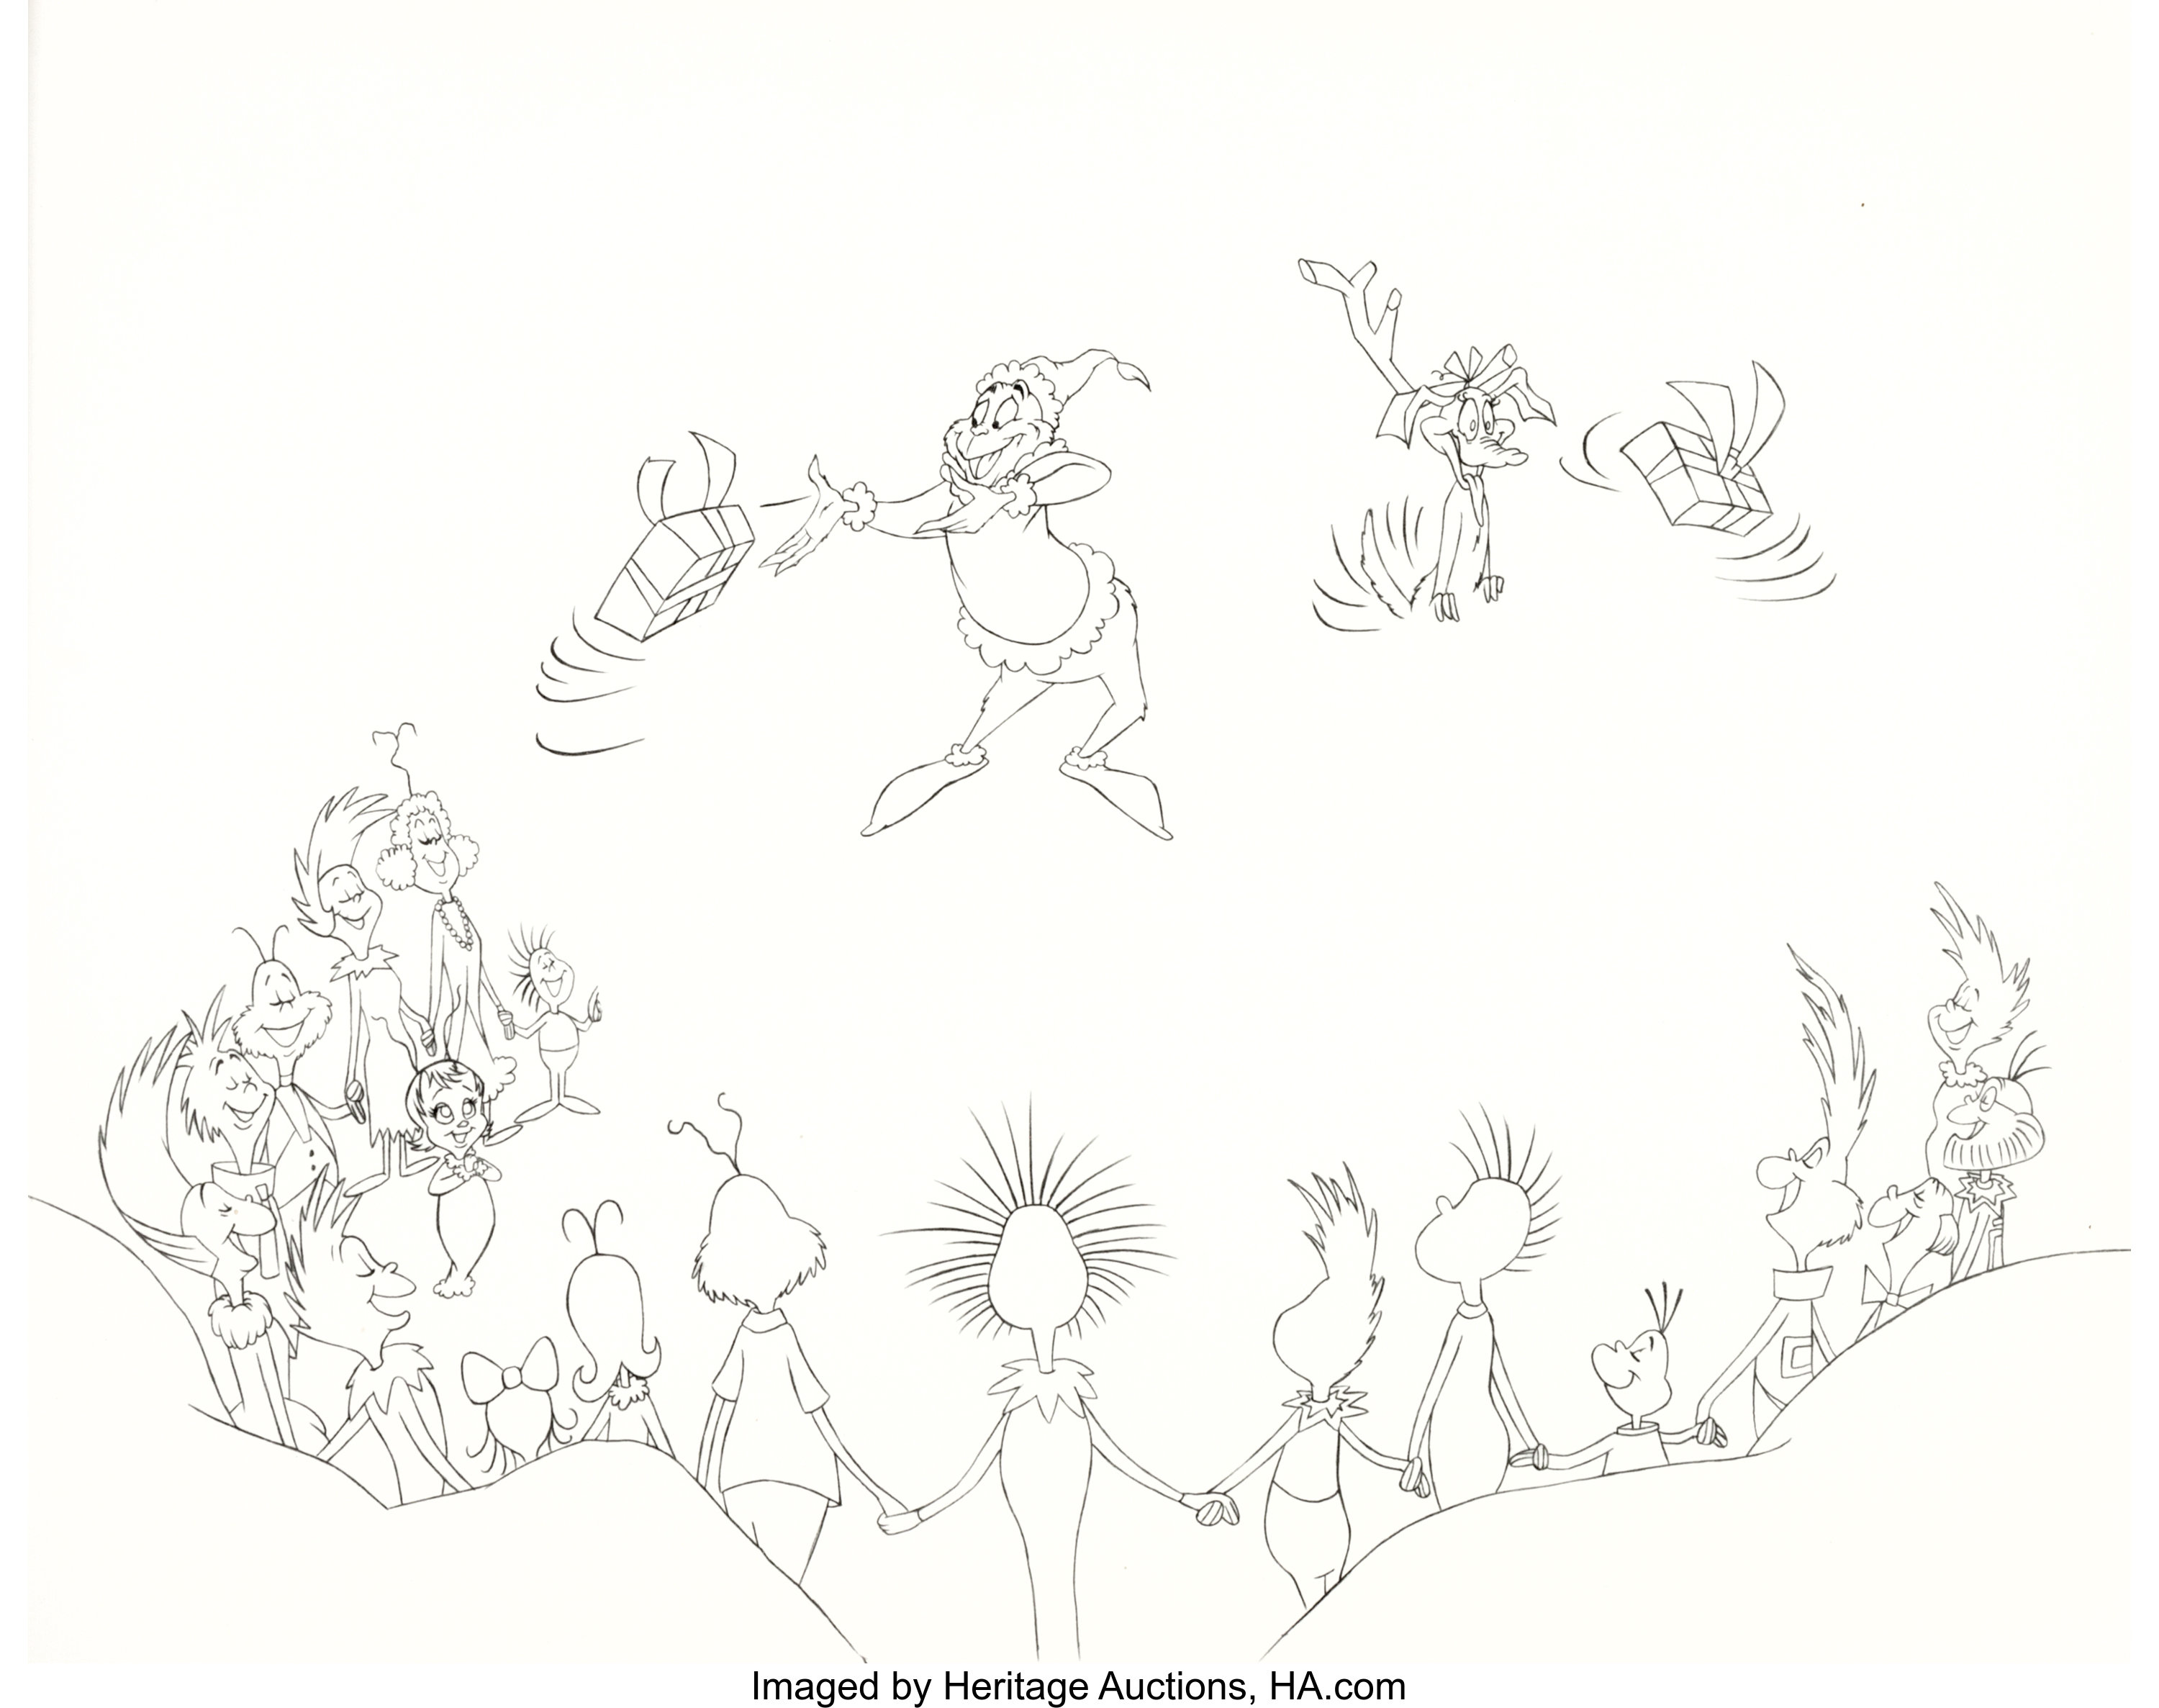 How The Grinch Stole Christmas Book Illustrations.Dr Seuss How The Grinch Stole Christmas Limited Edition